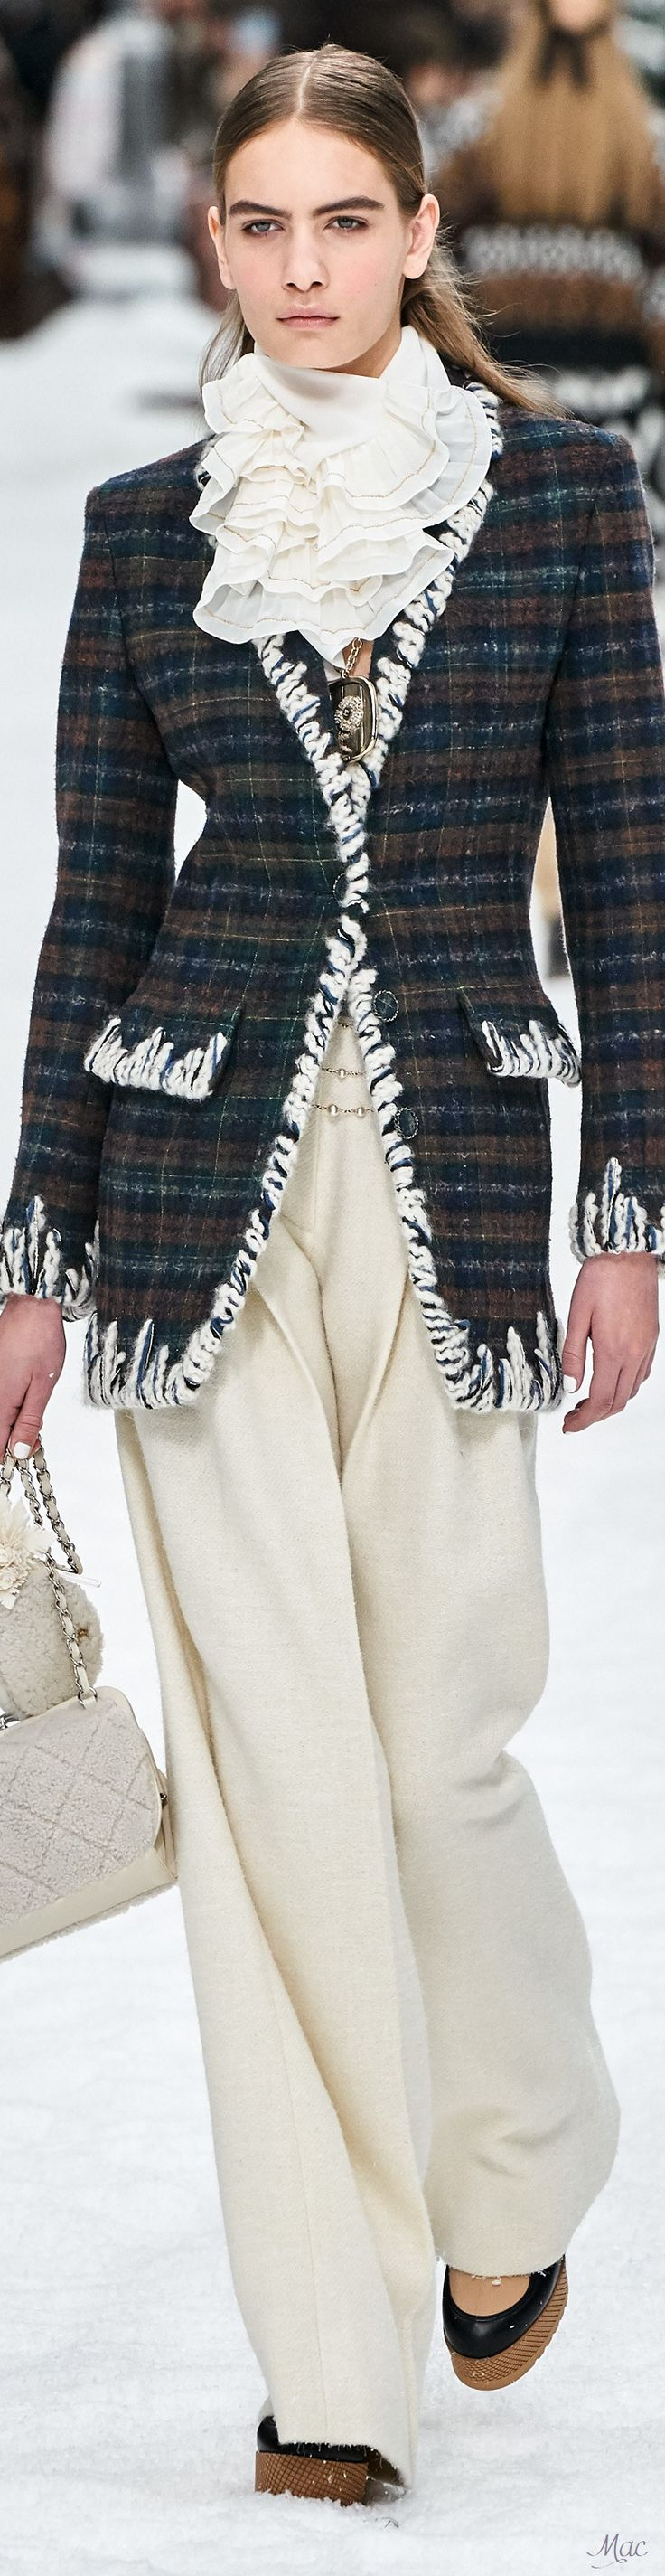 Chanel Fall 2019 RTW #rtw #fall2019 #vogue #chanel #womenswear